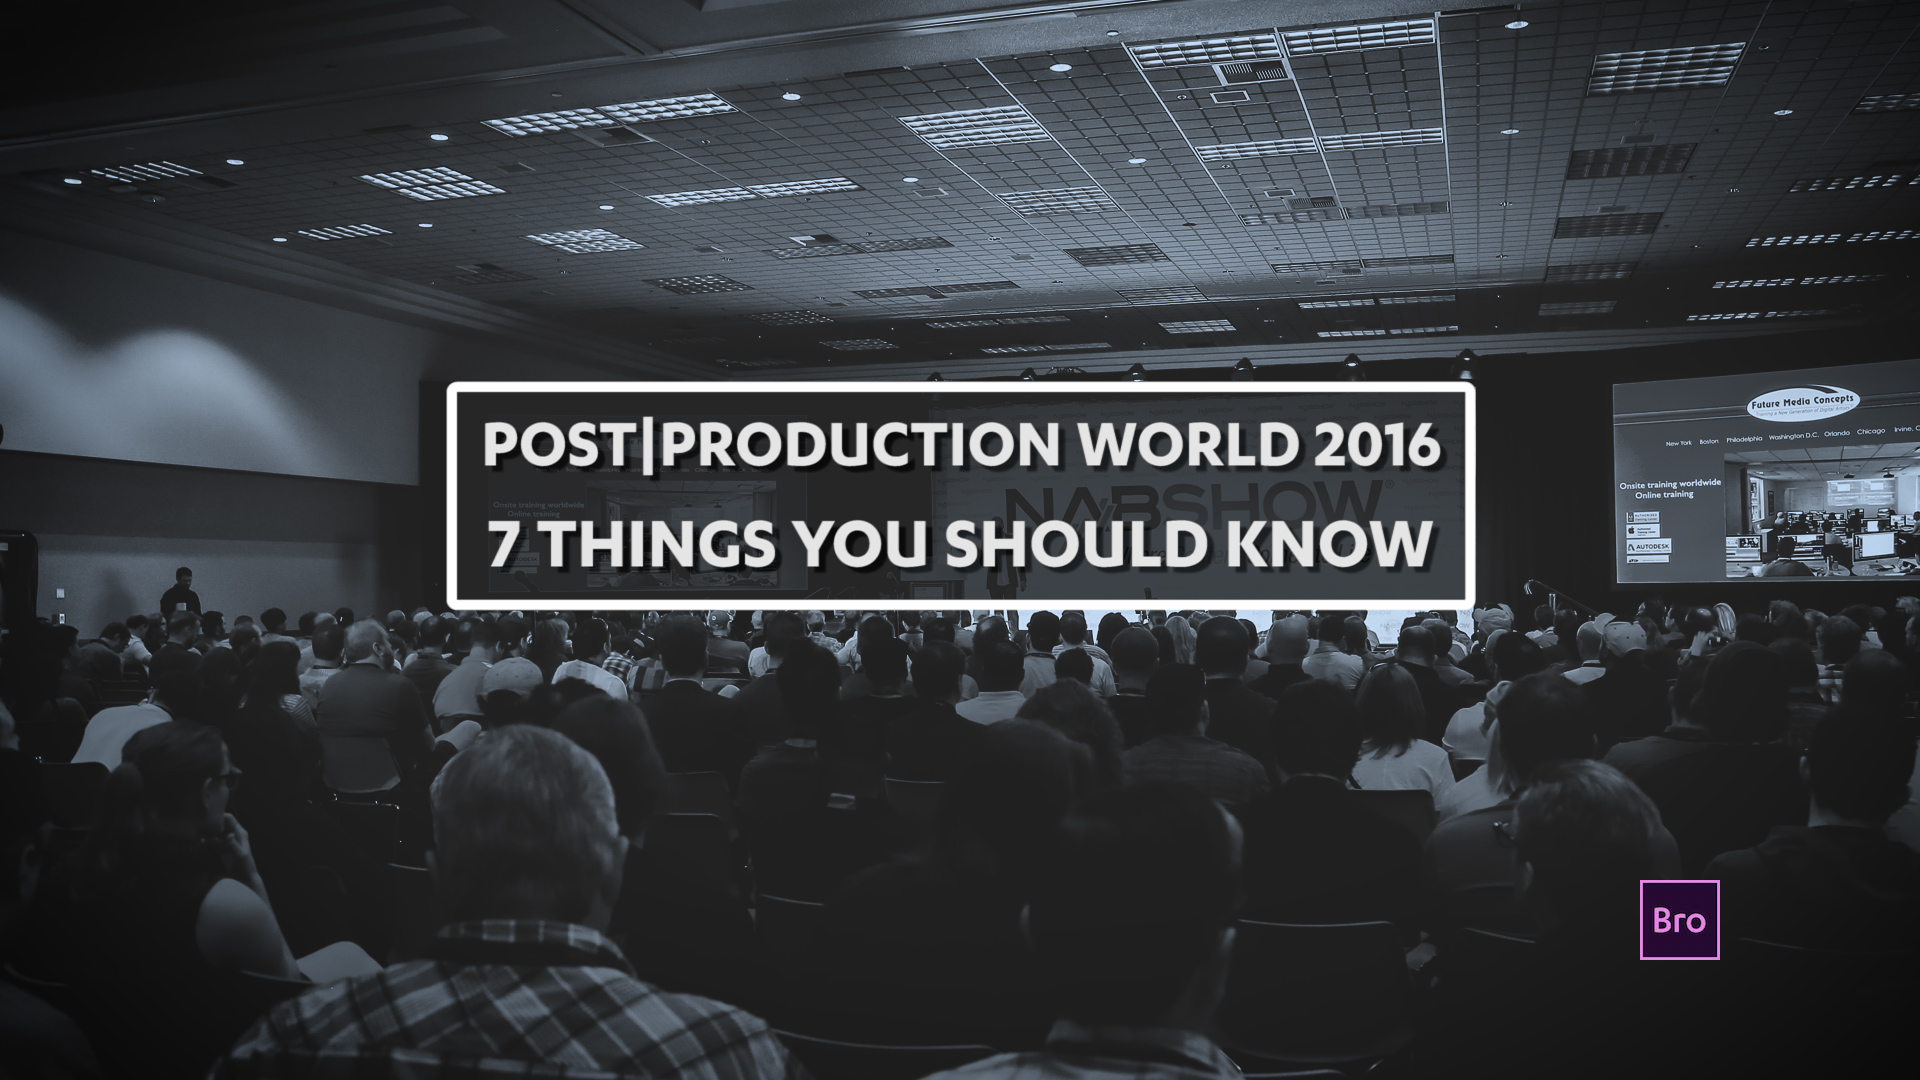 Whether you are a first-time or long-time Post|Production World attendee, here are seven things you should know. Stuffed with information, quick links, and discounts, this post will prepare you to get the most (Premiere Pro) out of Post|Production World 2016.